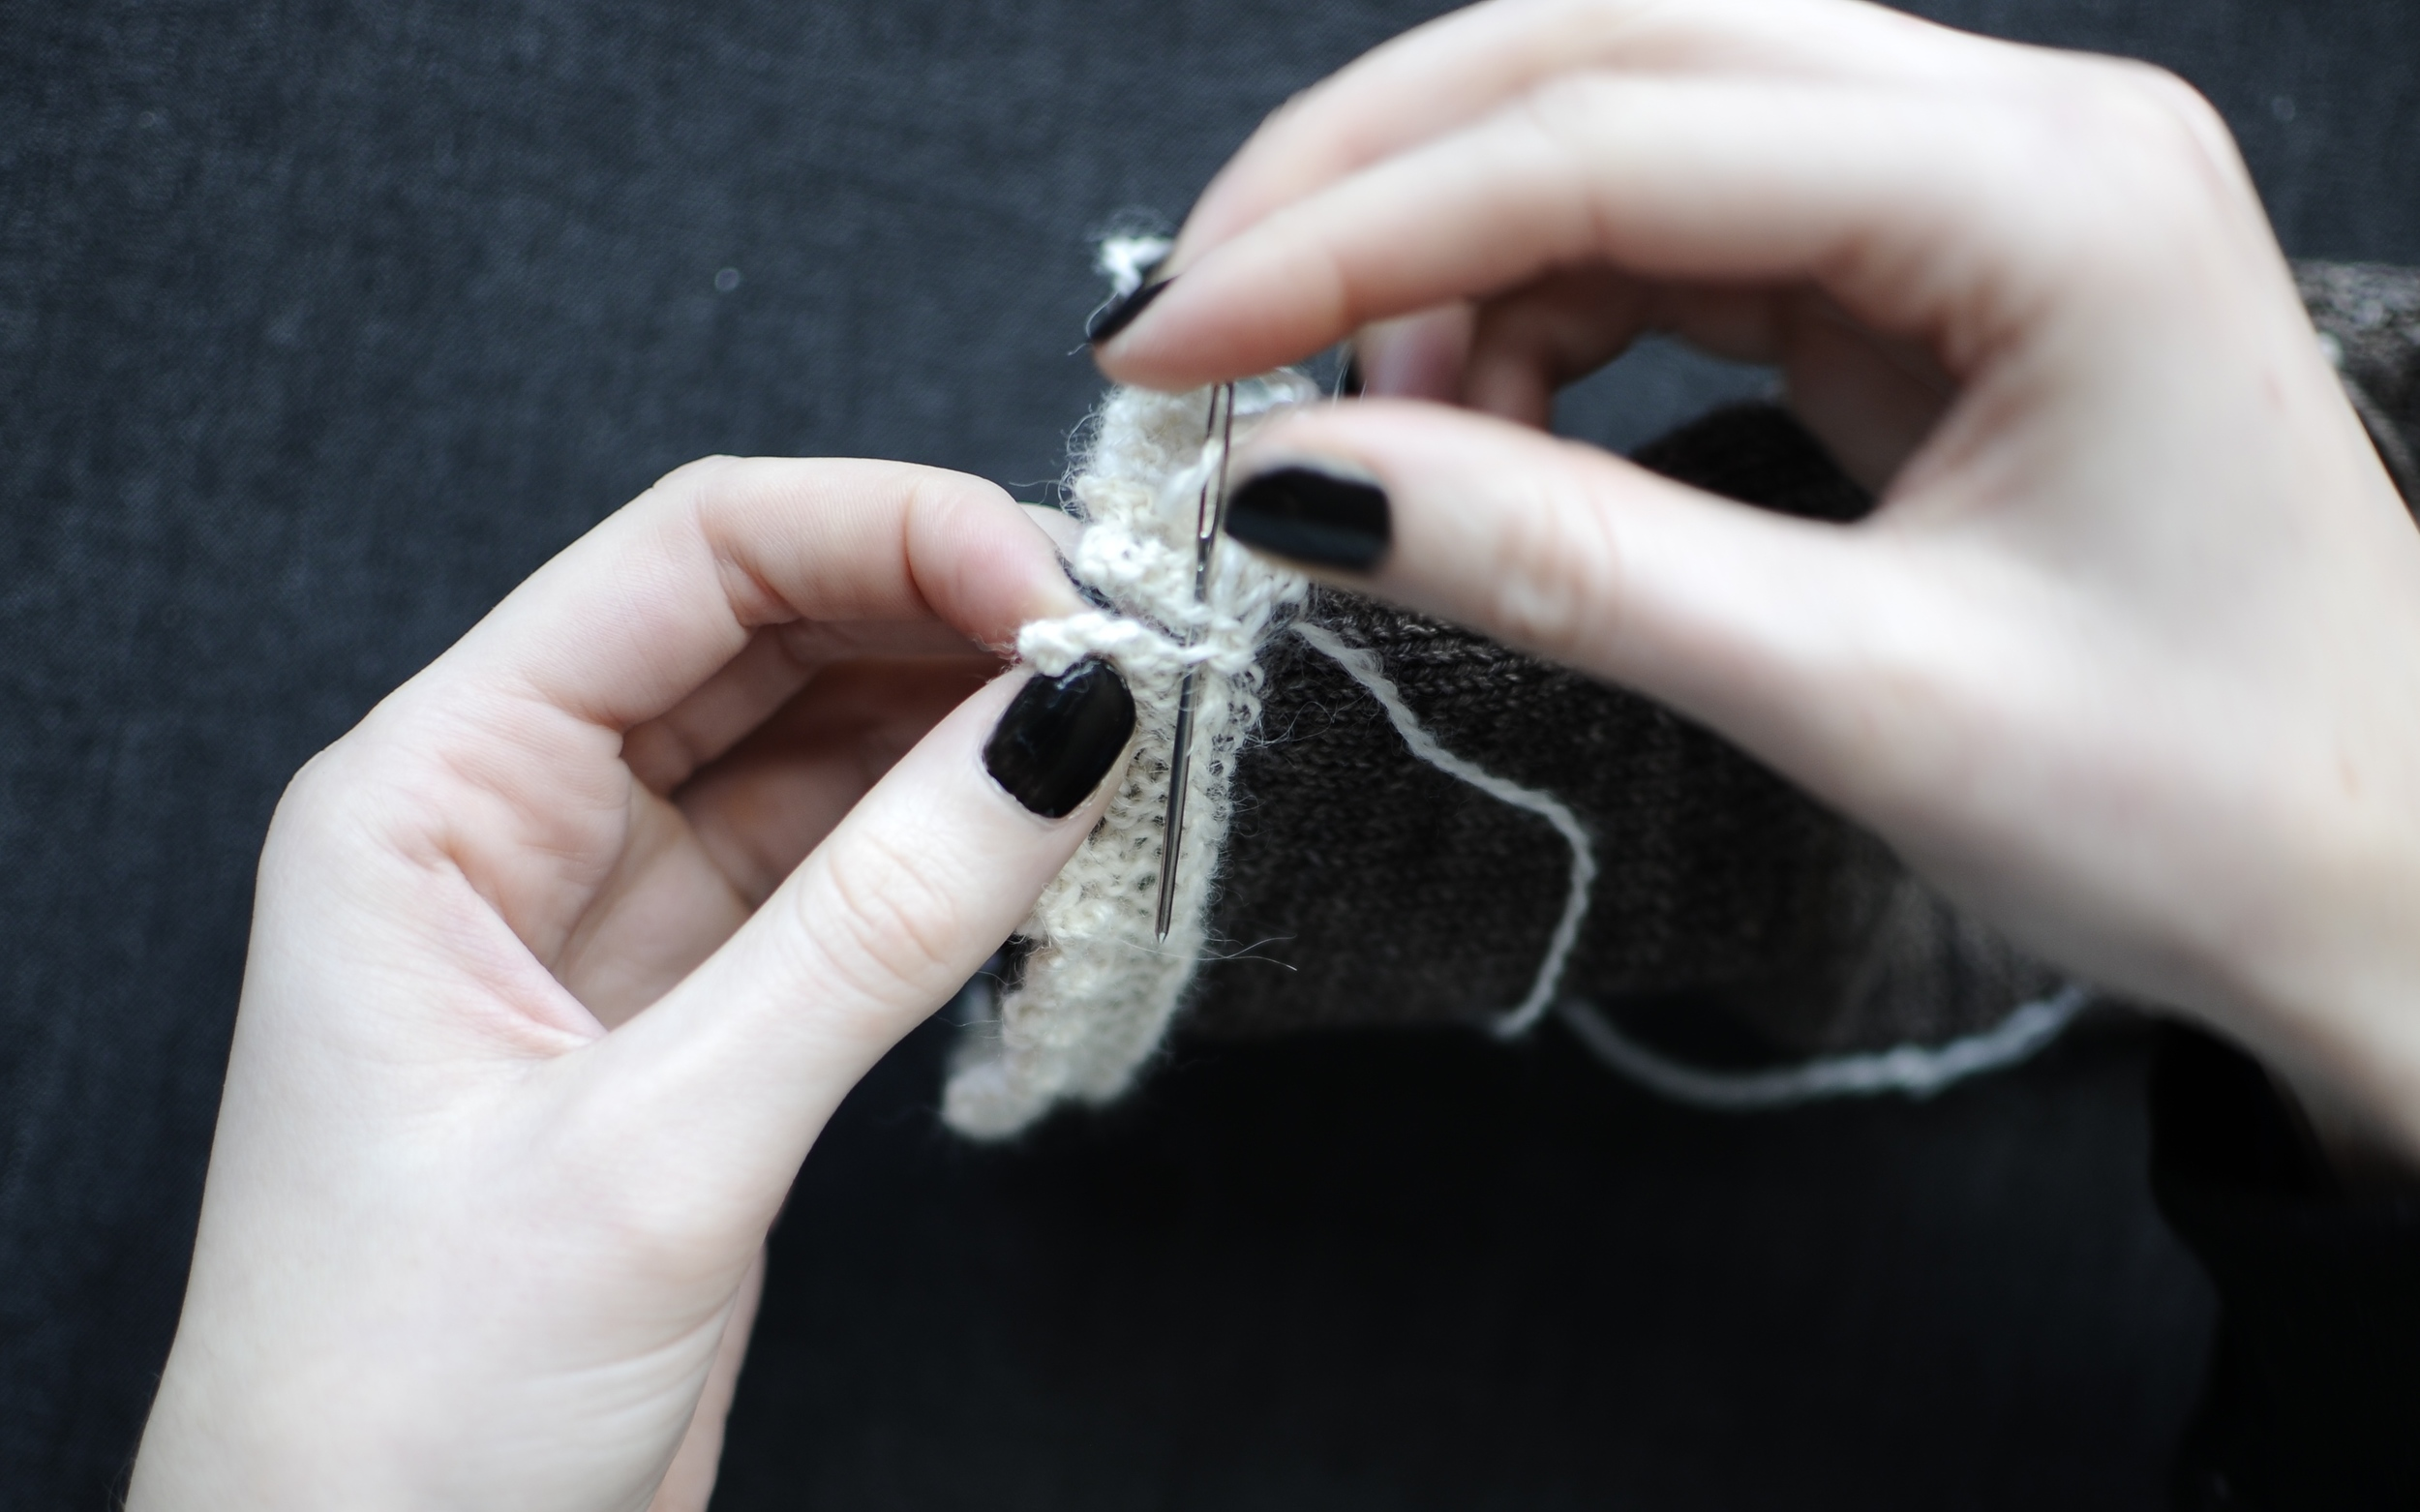 15. With the end of Yarn B, sew up the beginning and end of the lace trim for a nearly seamless finish.